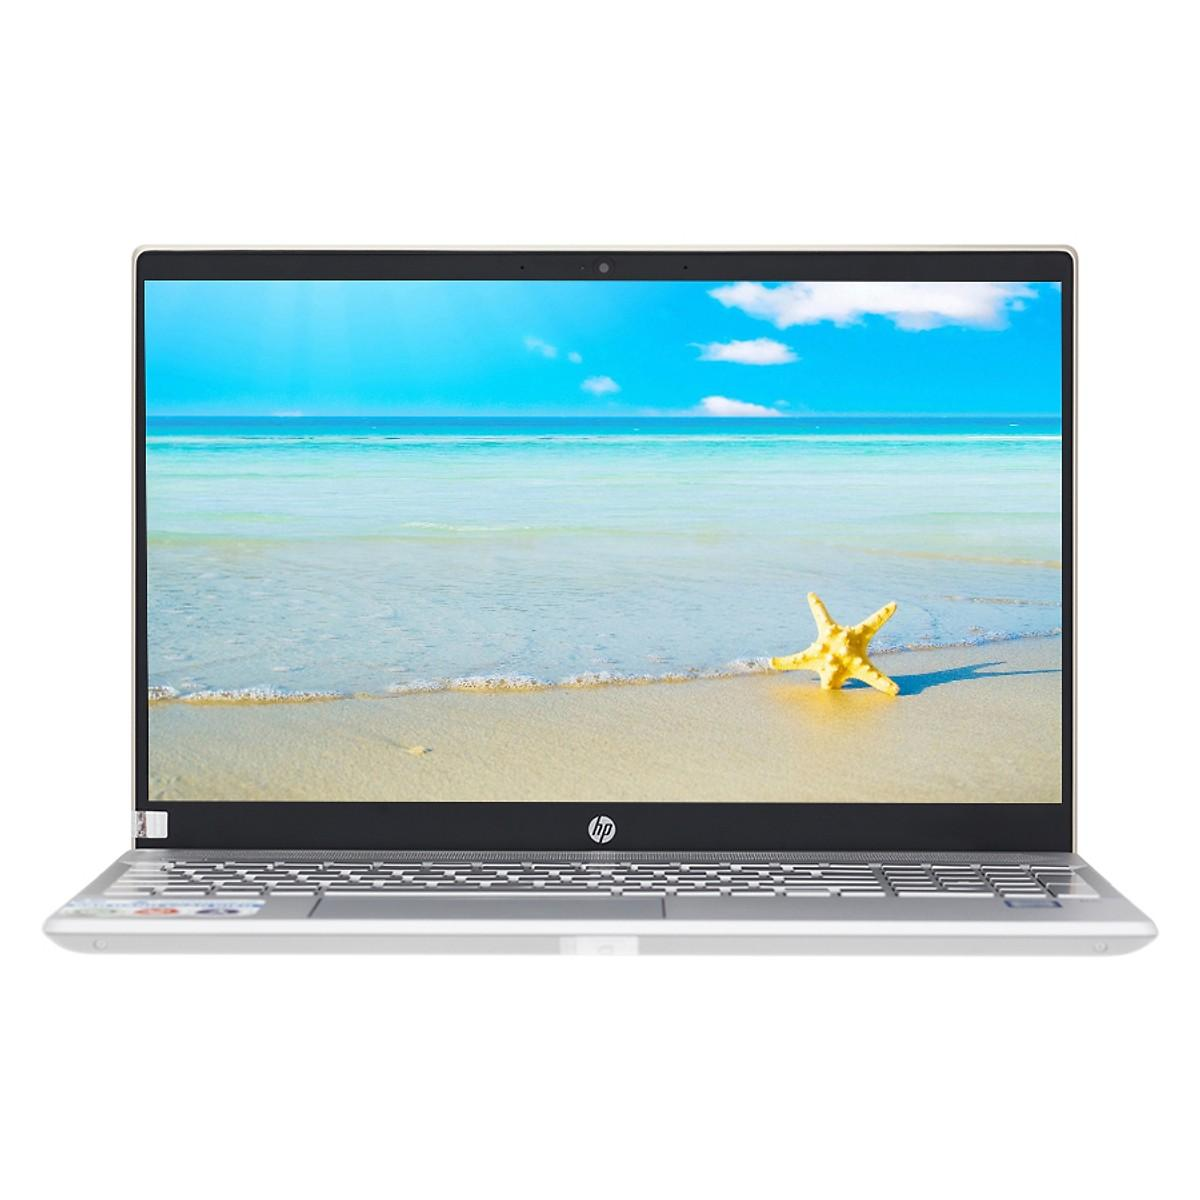 Laptop HP Pavilion 15-cs0018TU 4MF09PA Core i5-8250U/Win10 (15.6 inch) (Gold)